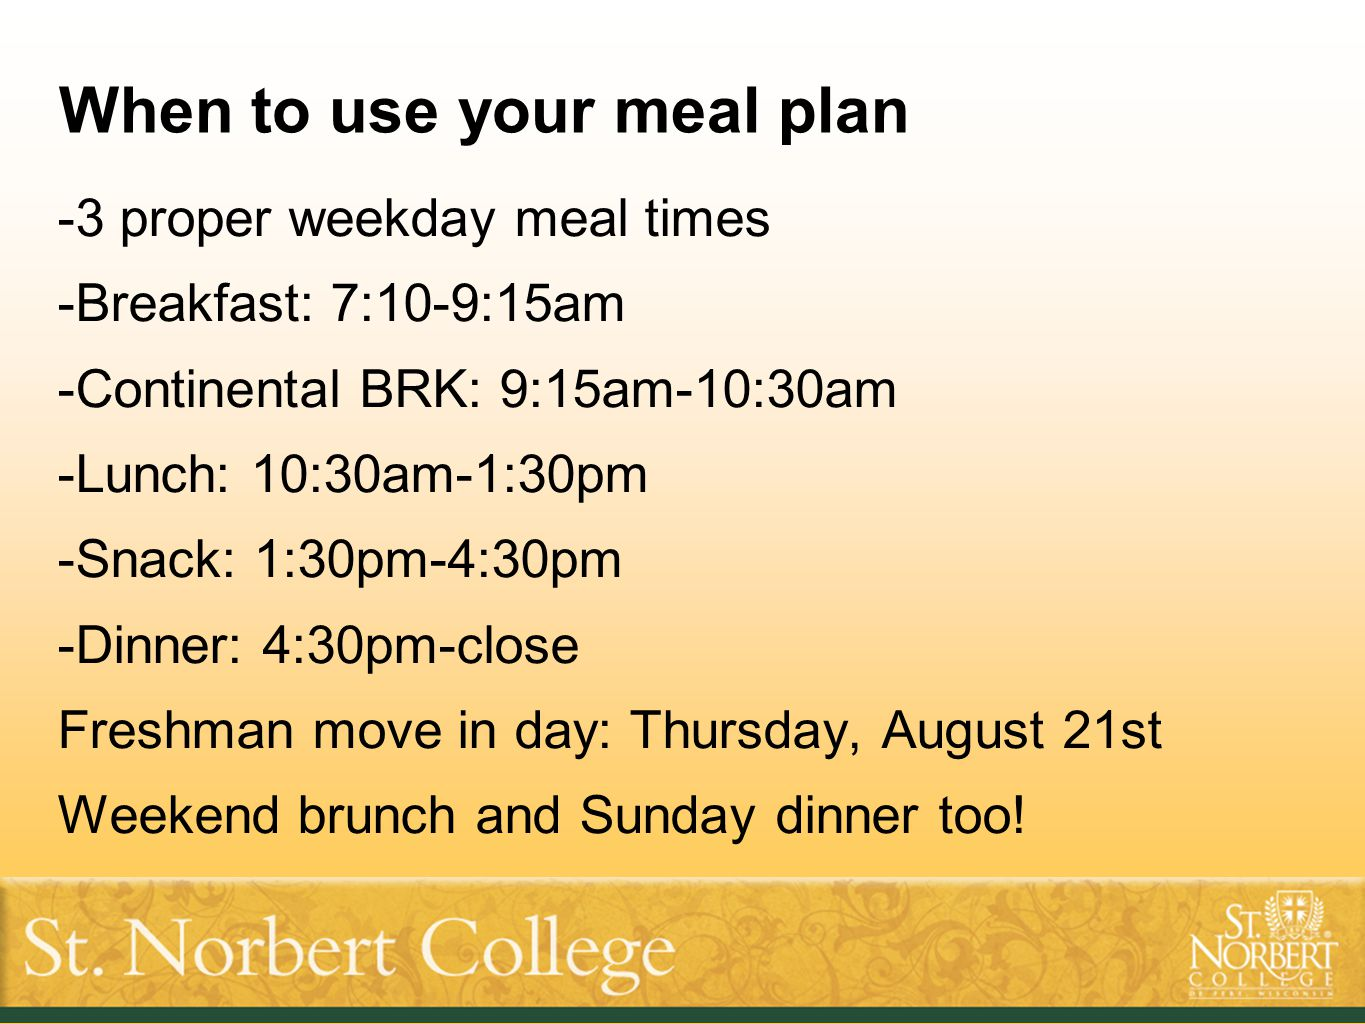 When to use your meal plan -3 proper weekday meal times -Breakfast: 7:10-9:15am -Continental BRK: 9:15am-10:30am -Lunch: 10:30am-1:30pm -Snack: 1:30pm-4:30pm -Dinner: 4:30pm-close Freshman move in day: Thursday, August 21st Weekend brunch and Sunday dinner too!